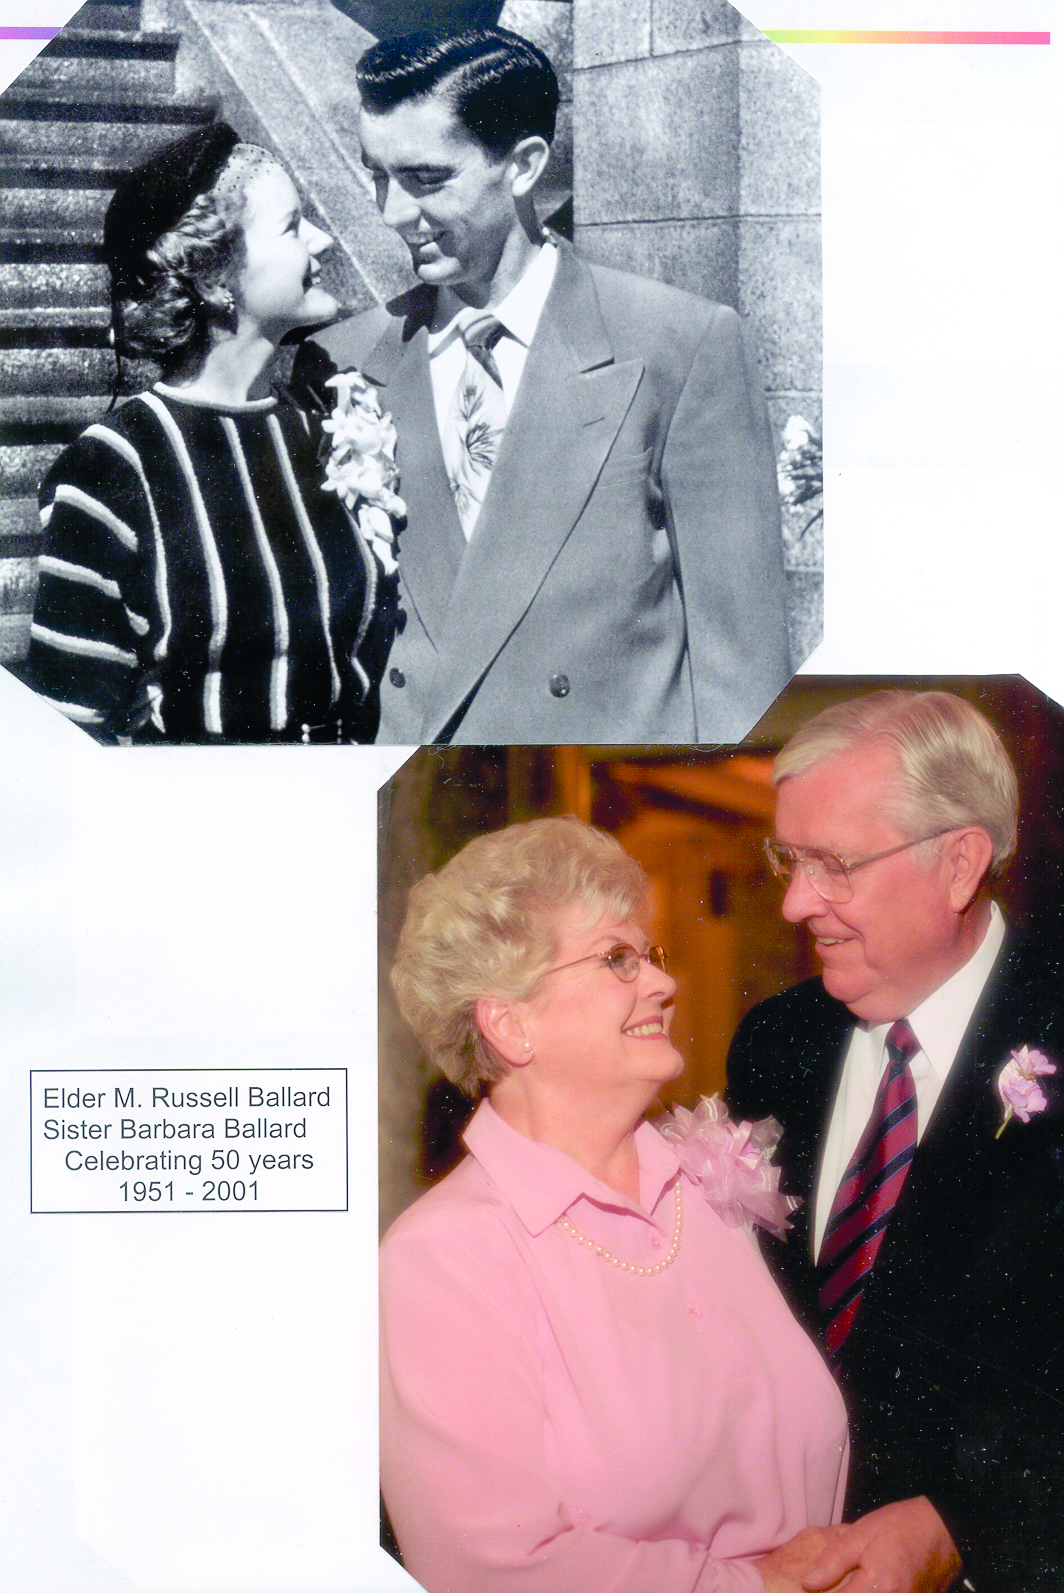 Photographs shared of Sister Barbara Bowen Ballard and President M. Russell Ballard during their 50th wedding anniversary celebration.